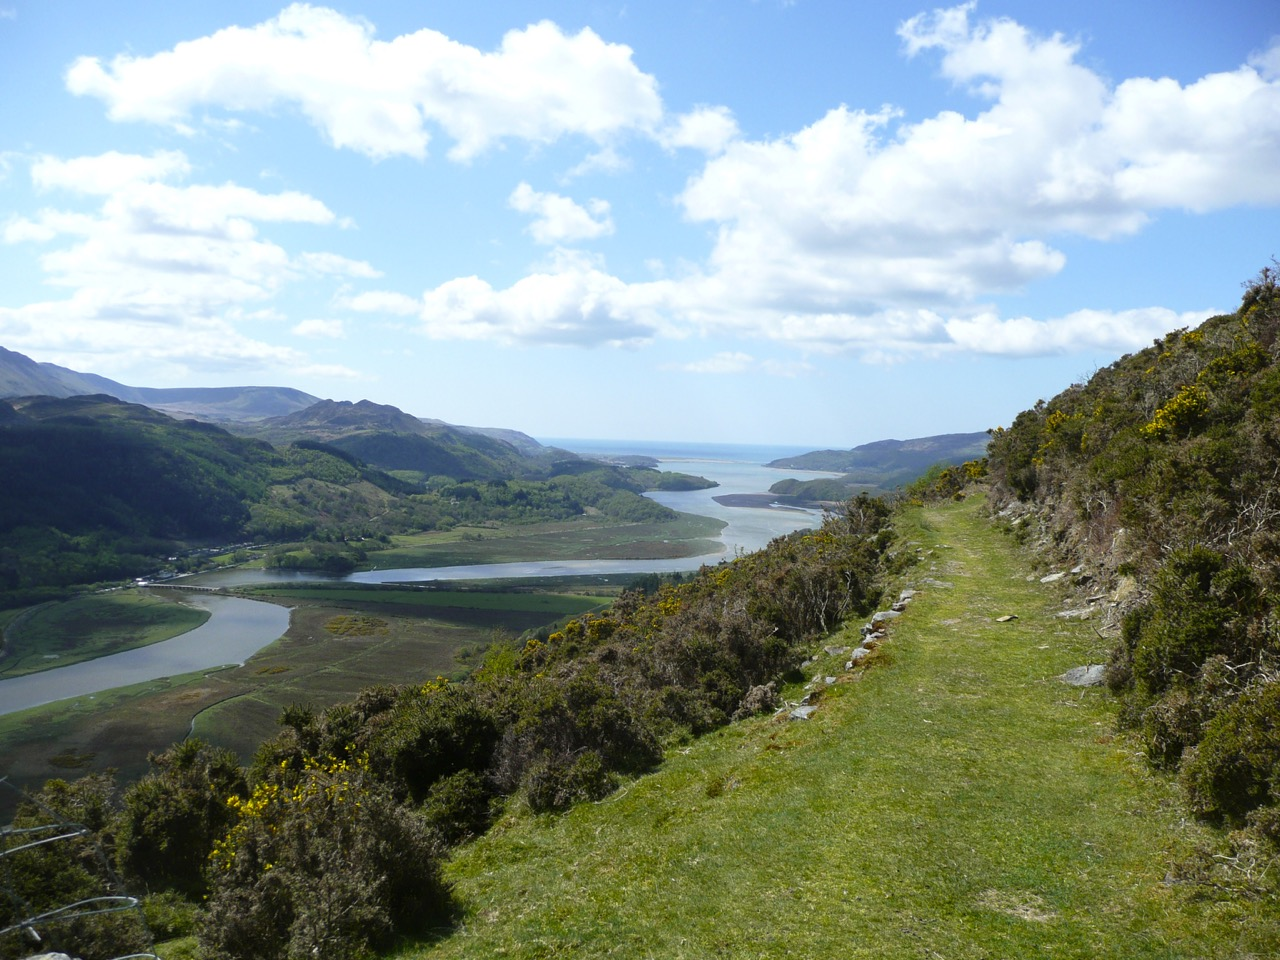 The Mawddach Estuary from New Precipice Walk